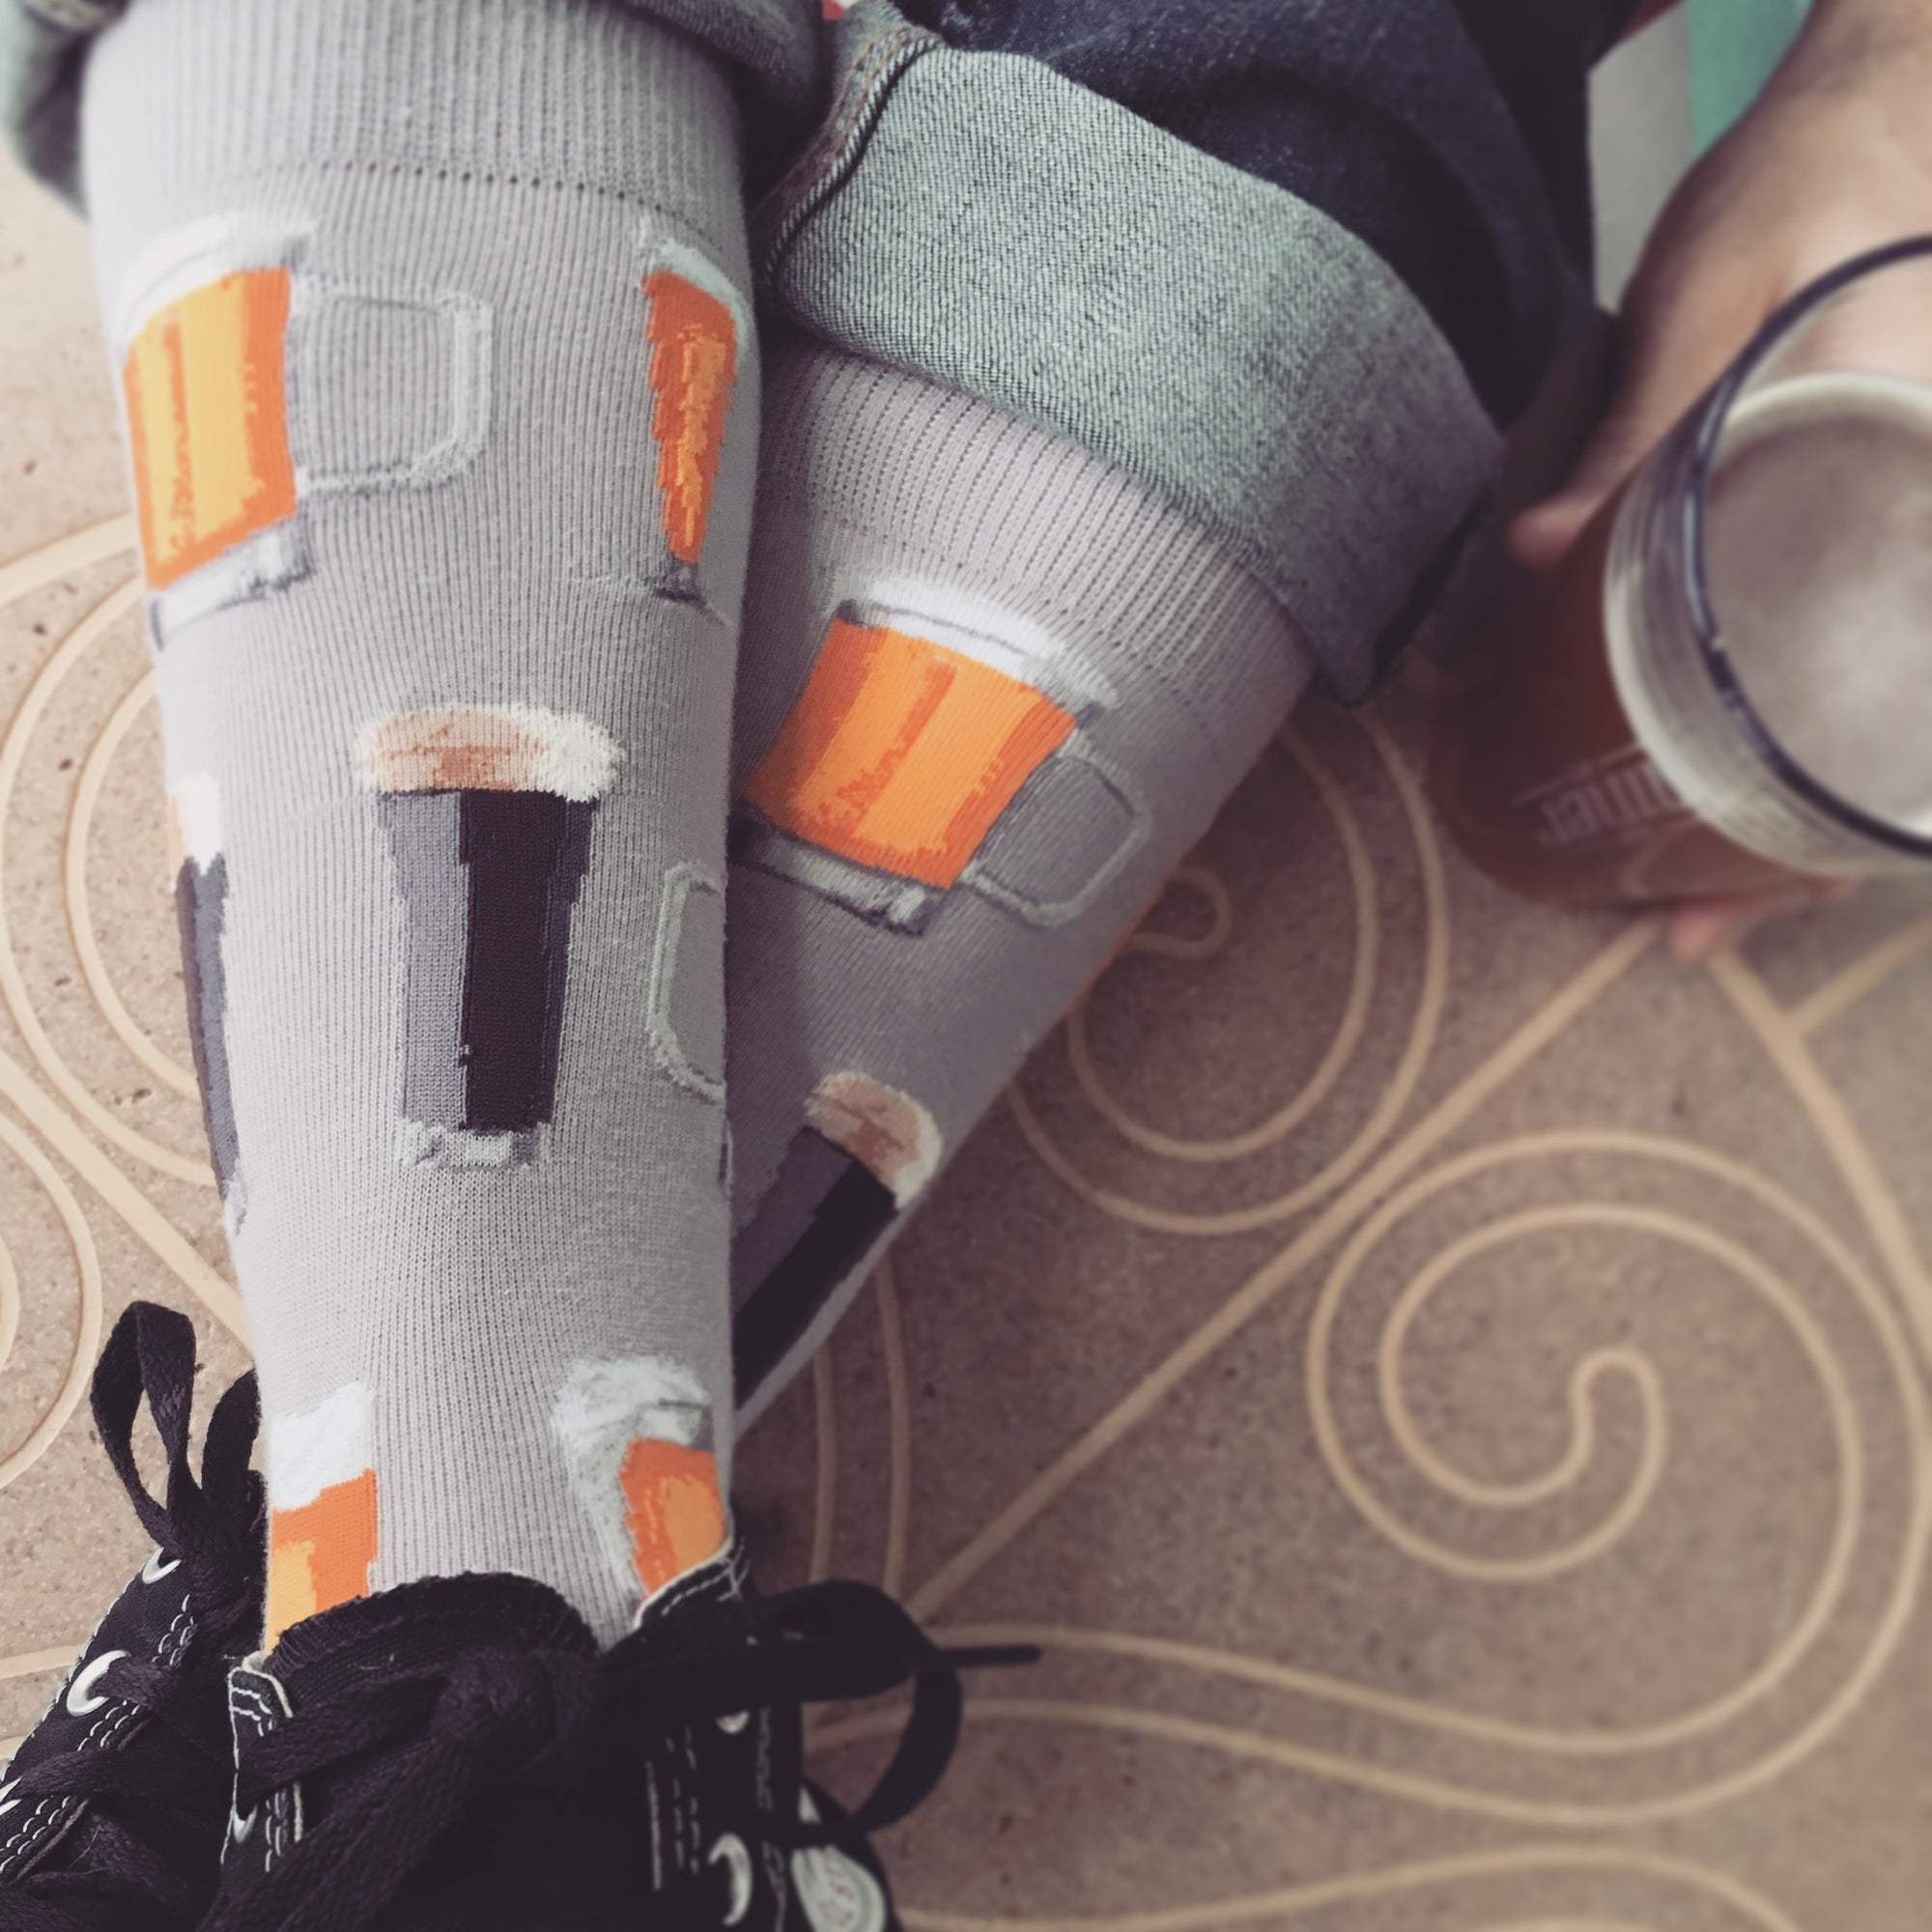 Beer socks featuring all sorts of brew on a gray background are worn by a beer enthusiast as he kicks back and drinks an IPA.